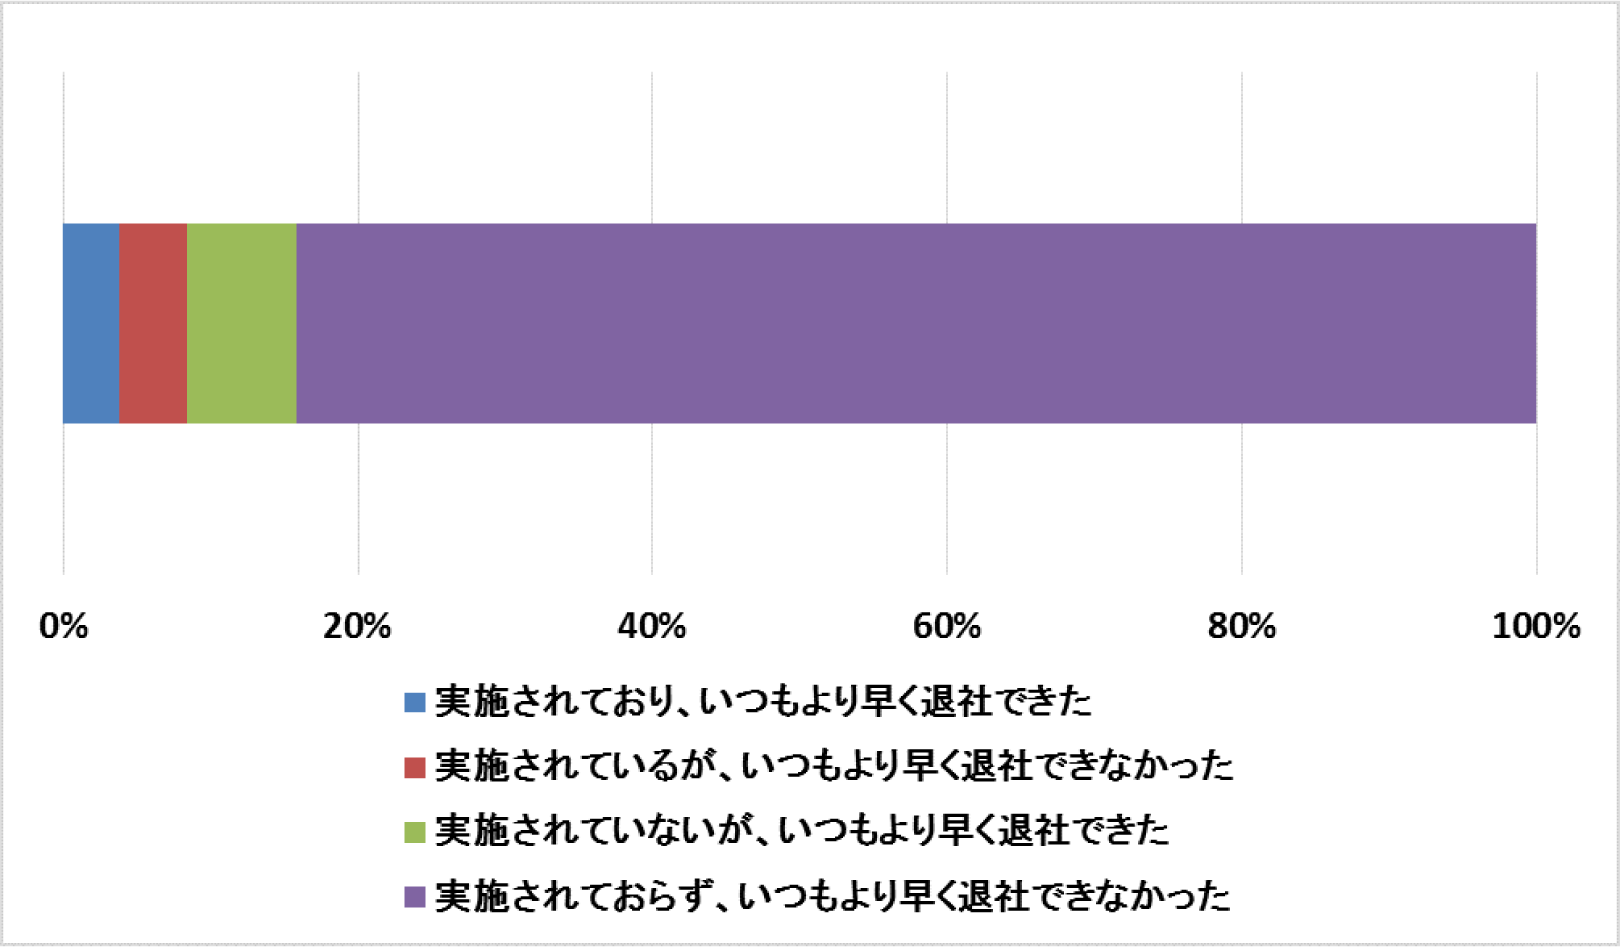 201808-20-fig-02.png